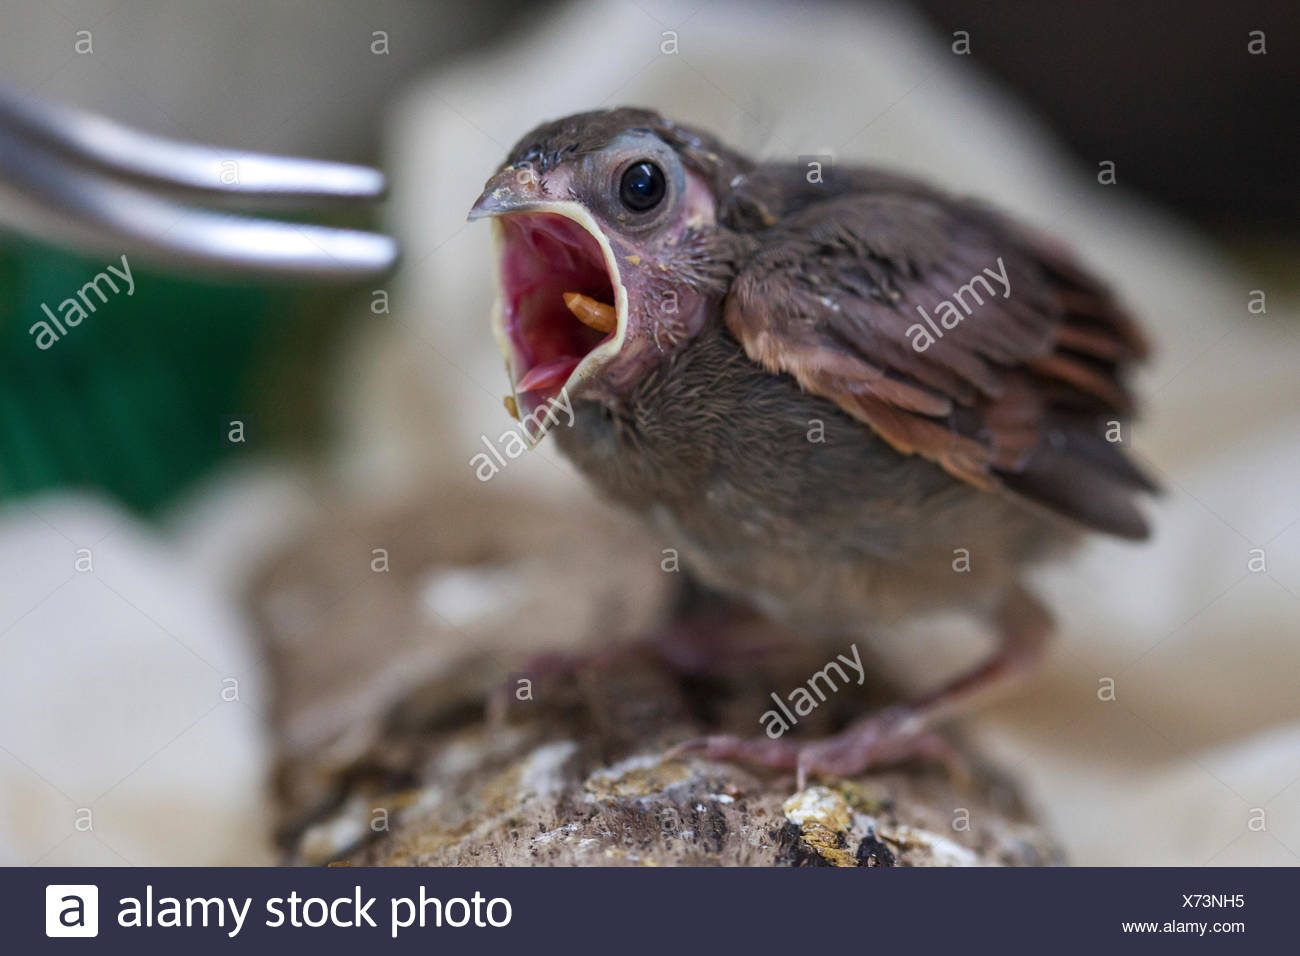 Baby Cod Baby Bird At Wild Care Cape Cod Stock Photo 279751281 Alamy